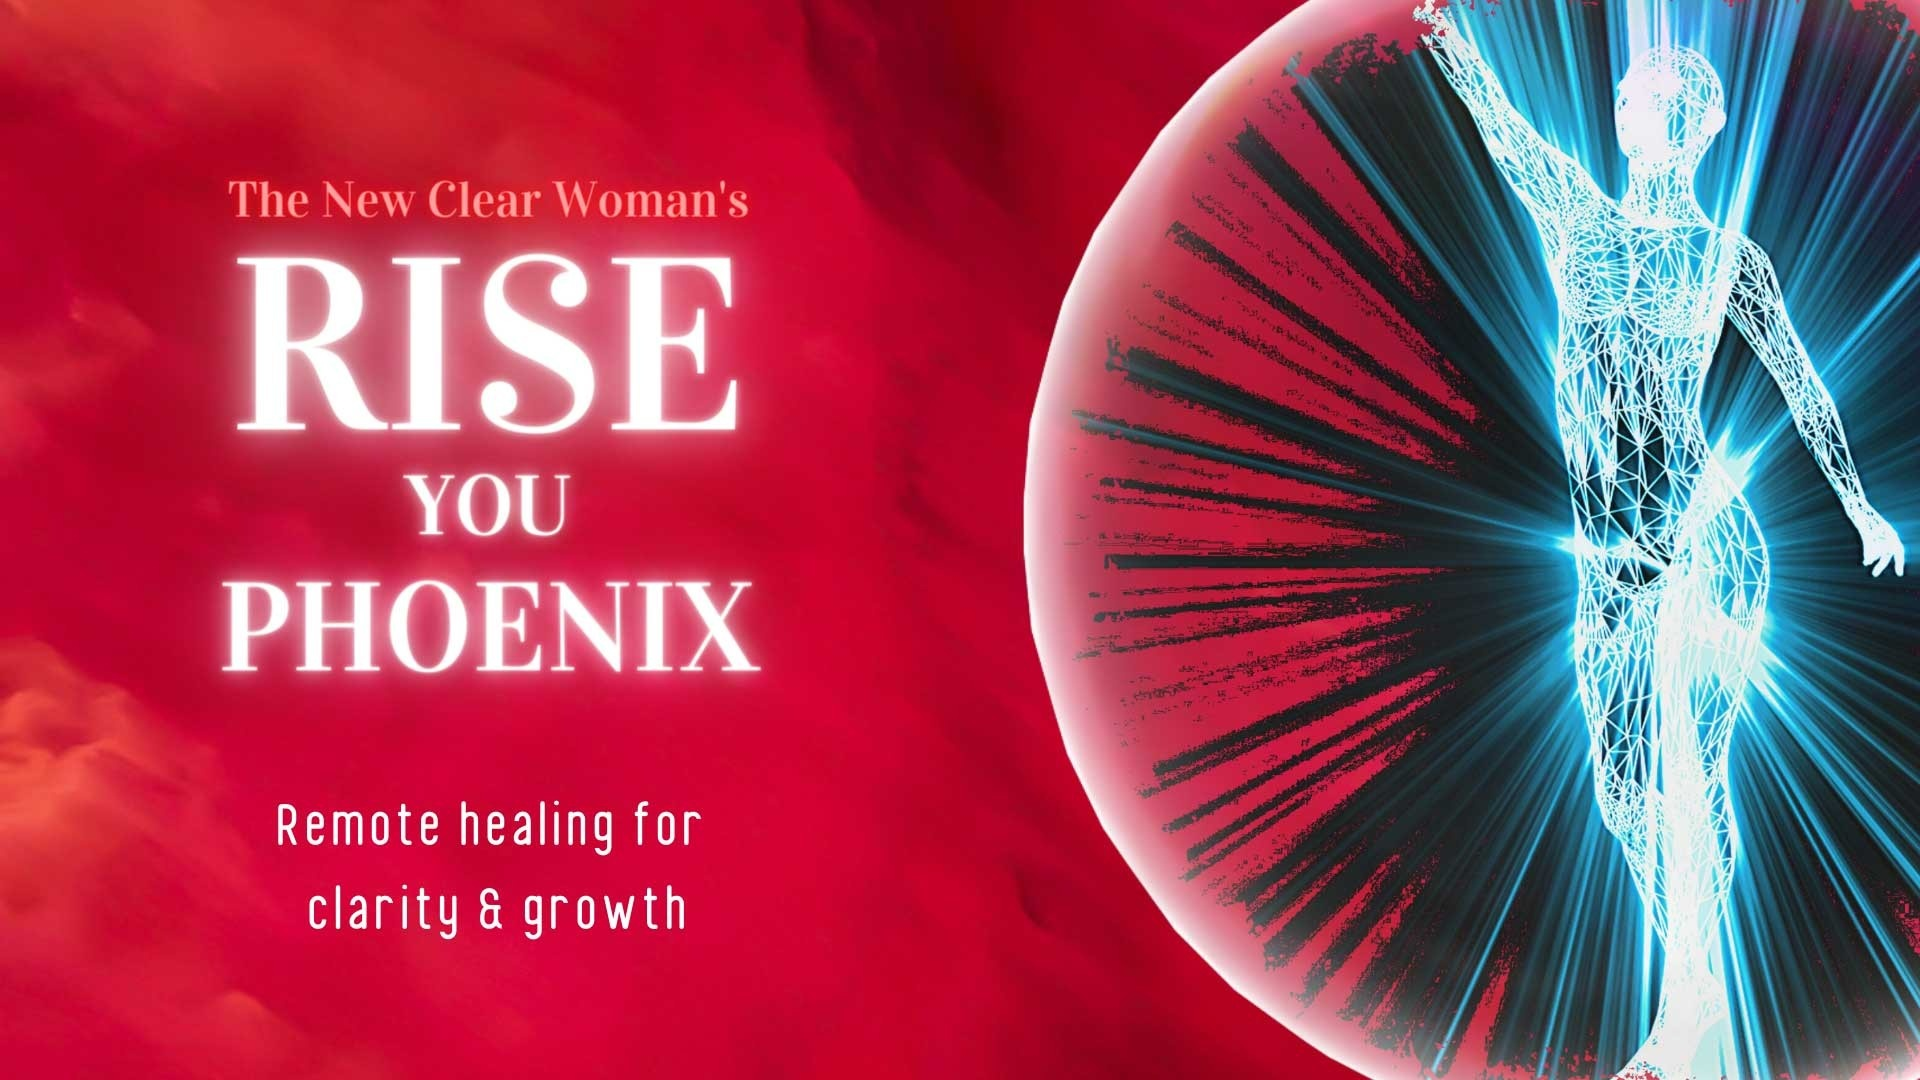 Rise you Phoenix. Clarity & growth distance healing program by Udumbara Gesu, an inner clarity expert